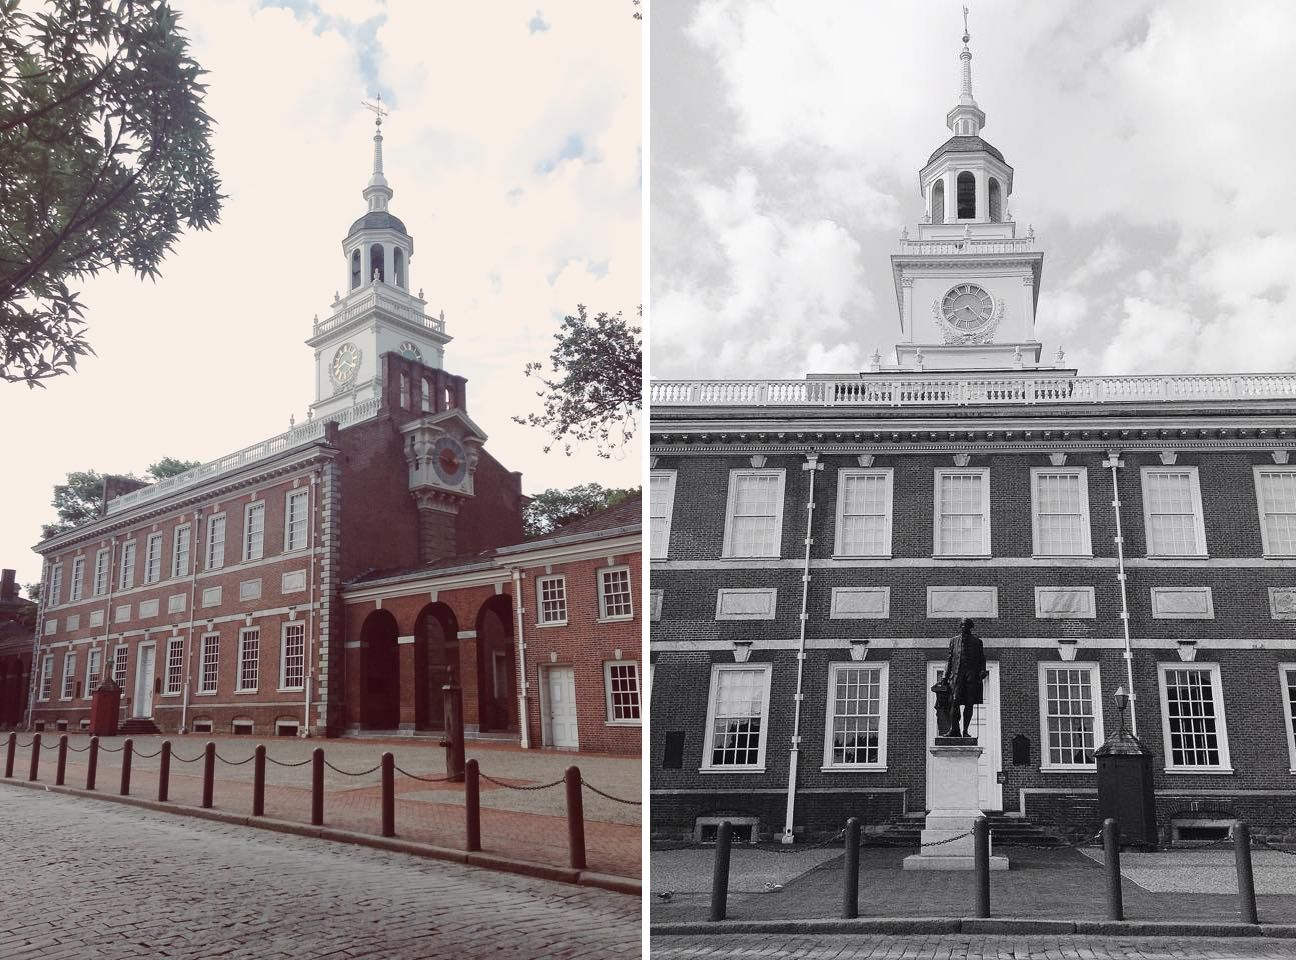 Independence Hall. Philadelphia, Pennsylvania. Birthplace of both the Declaration of Independence and the United States Constitution